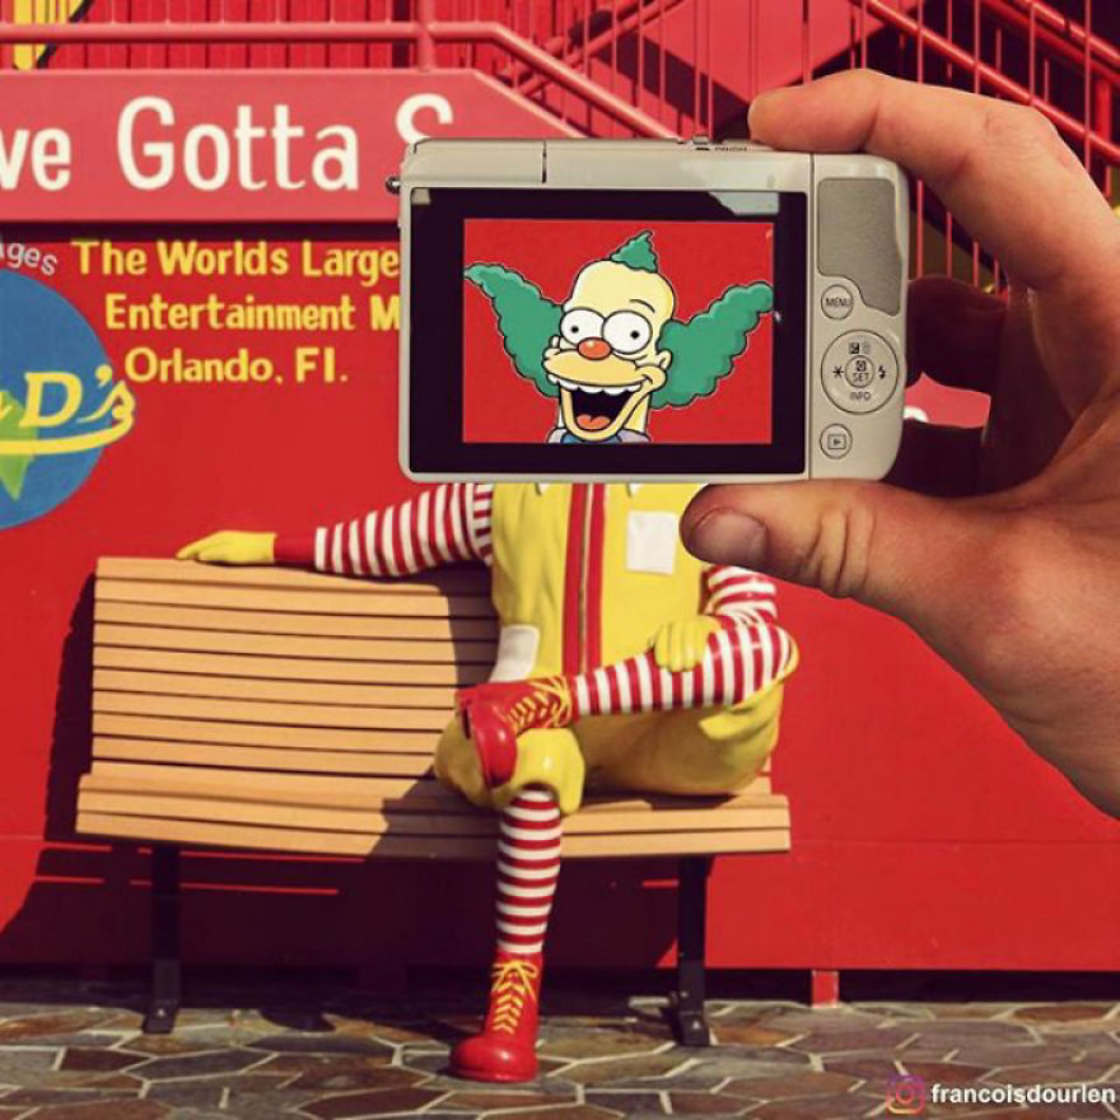 The Simpsons are invading our daily life with a simple iPhone